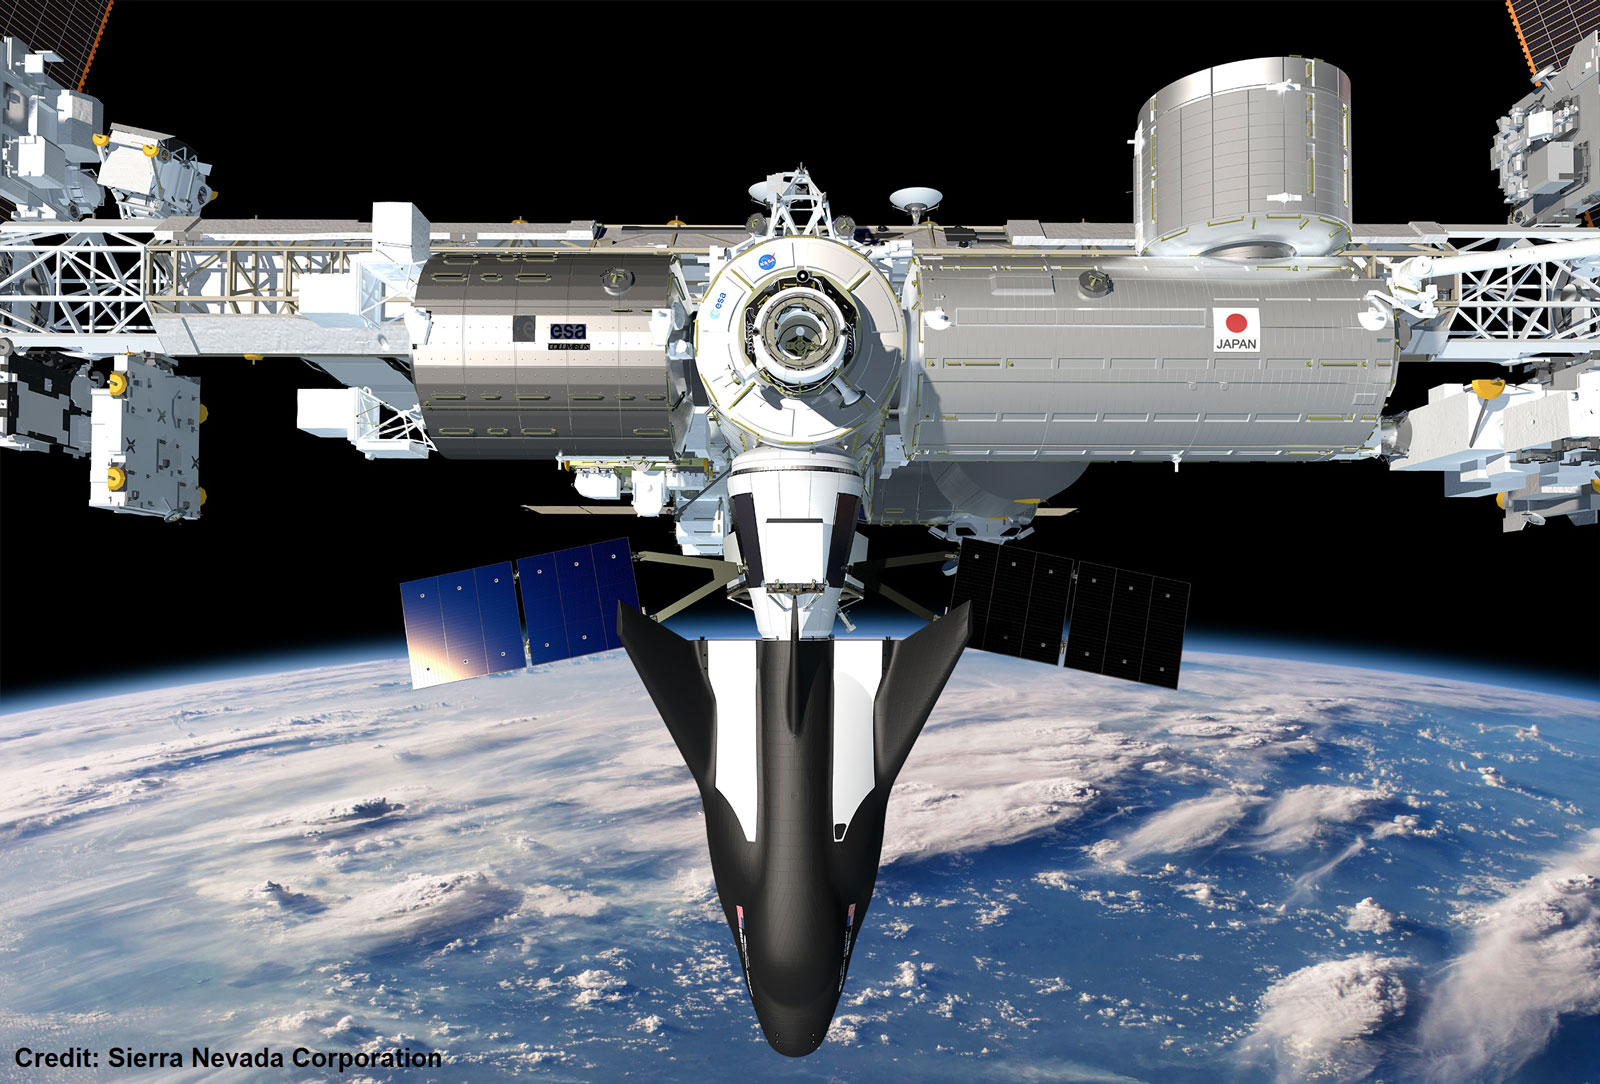 Rendering of SNC's <em>Dream Chaser®</em> Spacecraft docked to the International Space Station